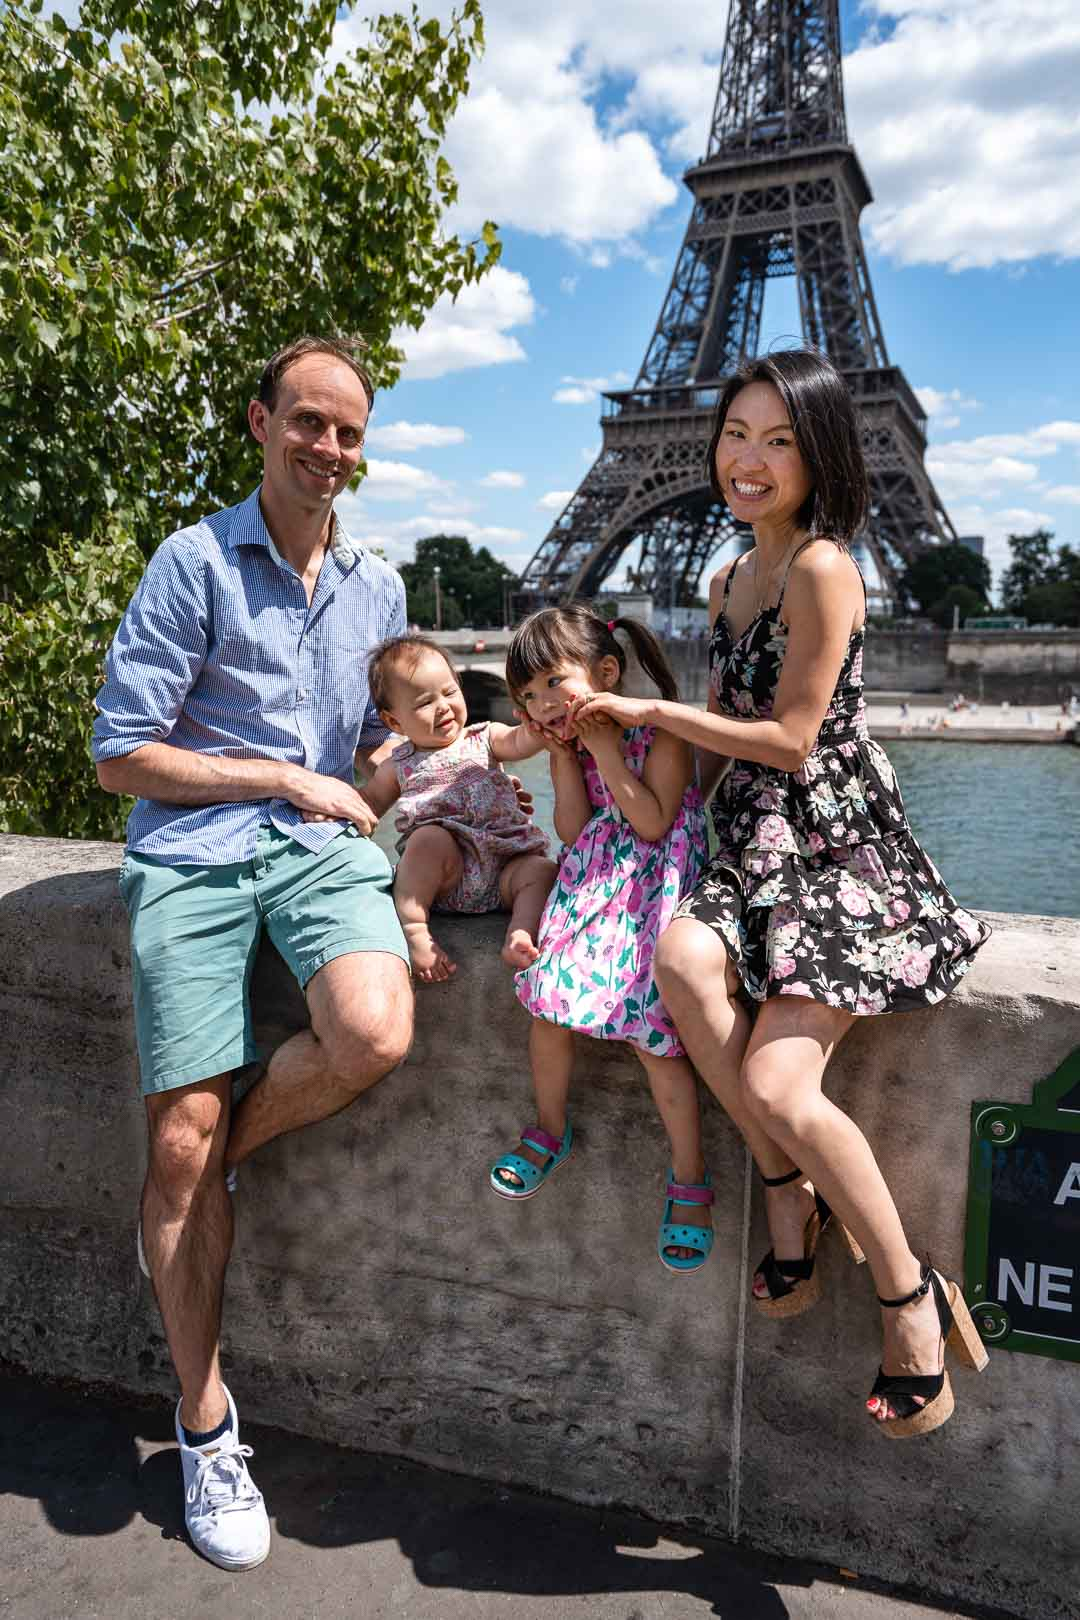 Family portrait in front of the Eiffel Tower